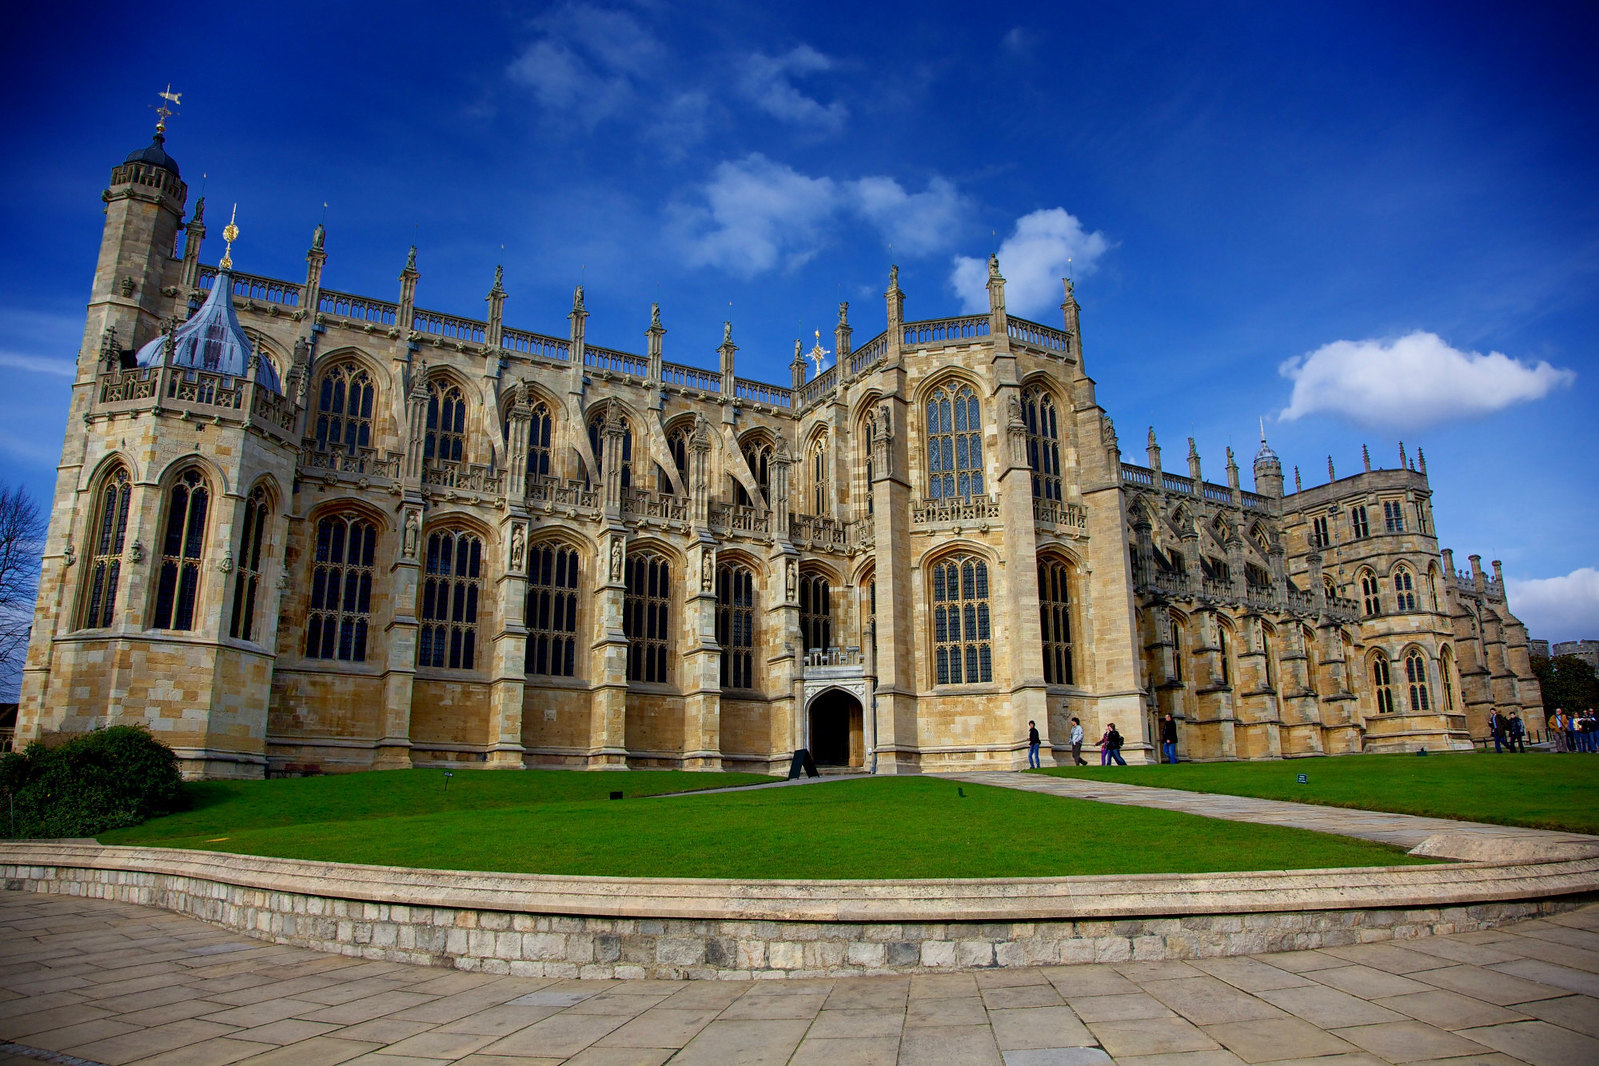 St. Georges Chapel, Windsor Castle. Credit Aurelien Guichard